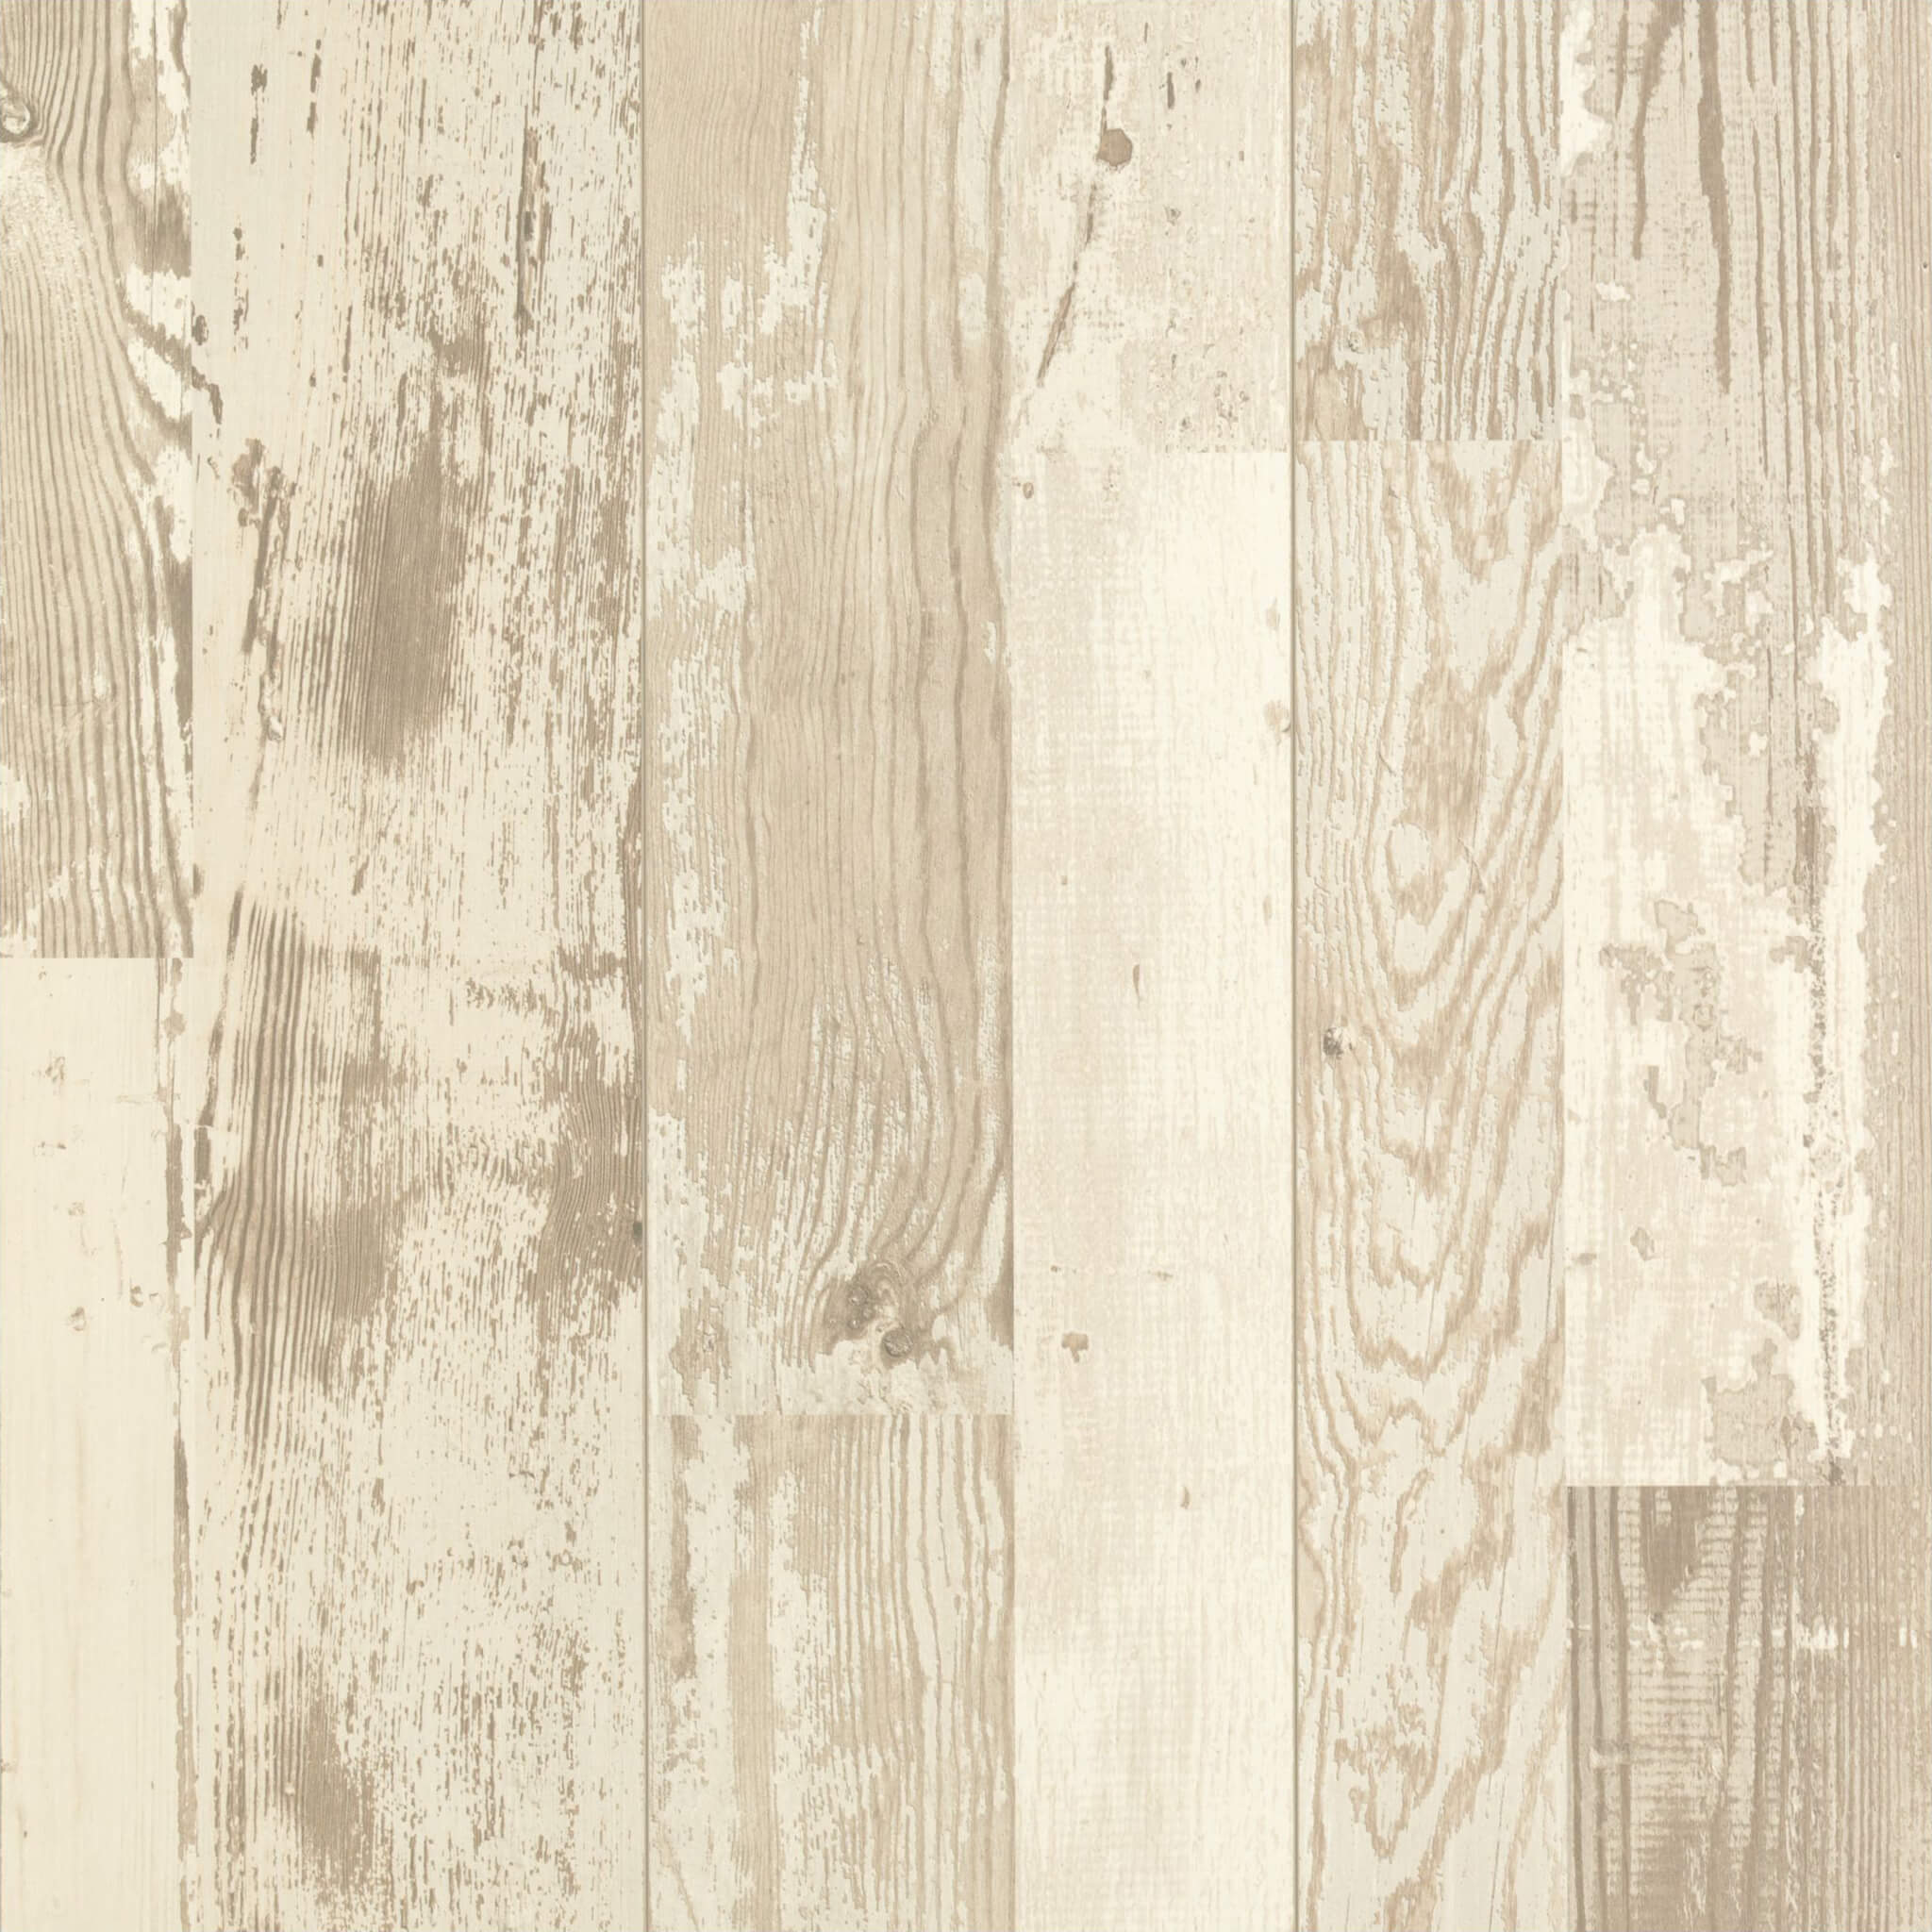 Regency Vision White Pine Laminate 7.5x47.2